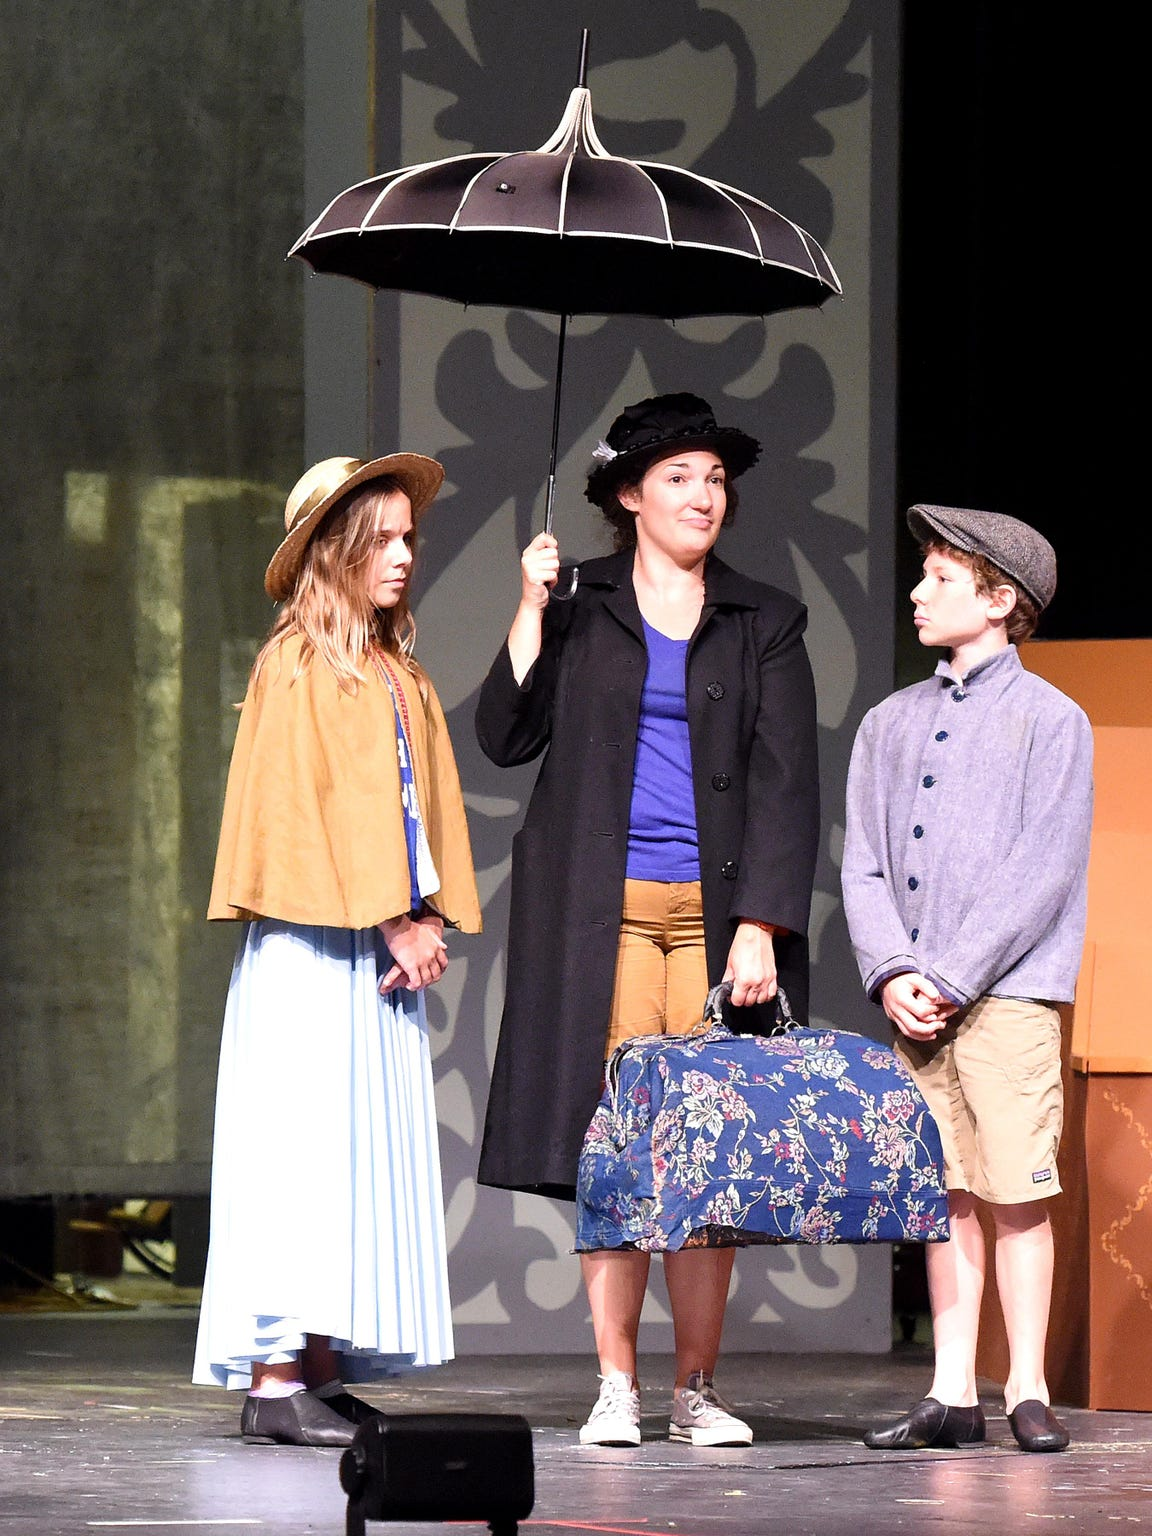 Liz Leone as Mary Poppins shares the stage with Kate